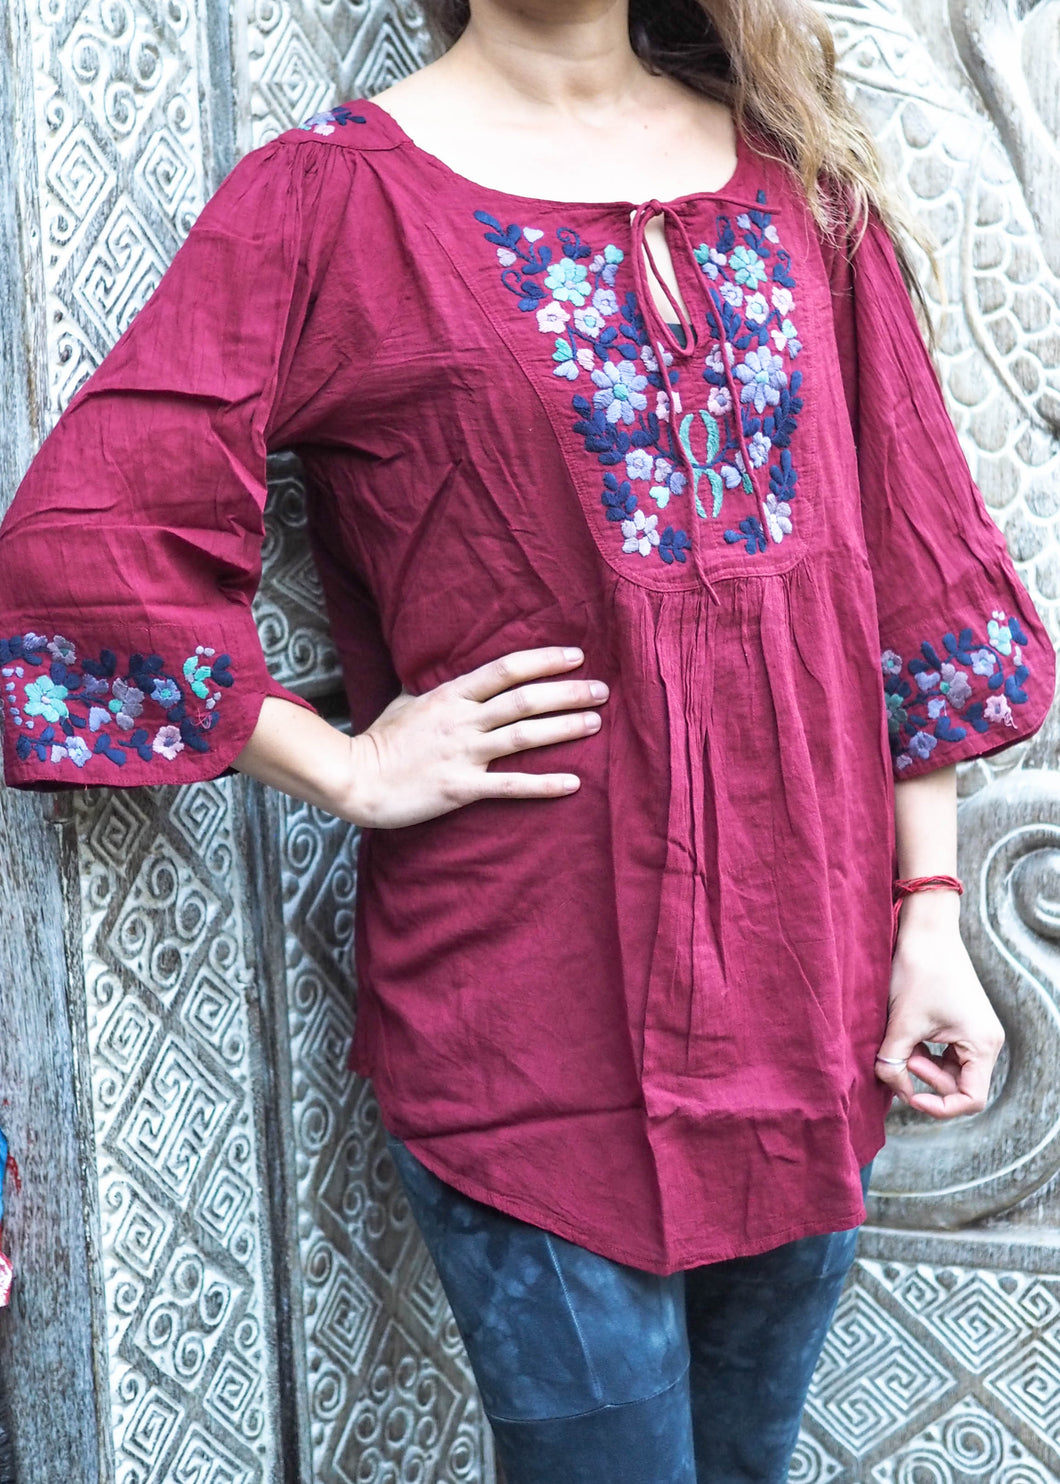 Wildflower Blouse Blue Floral on Crimson